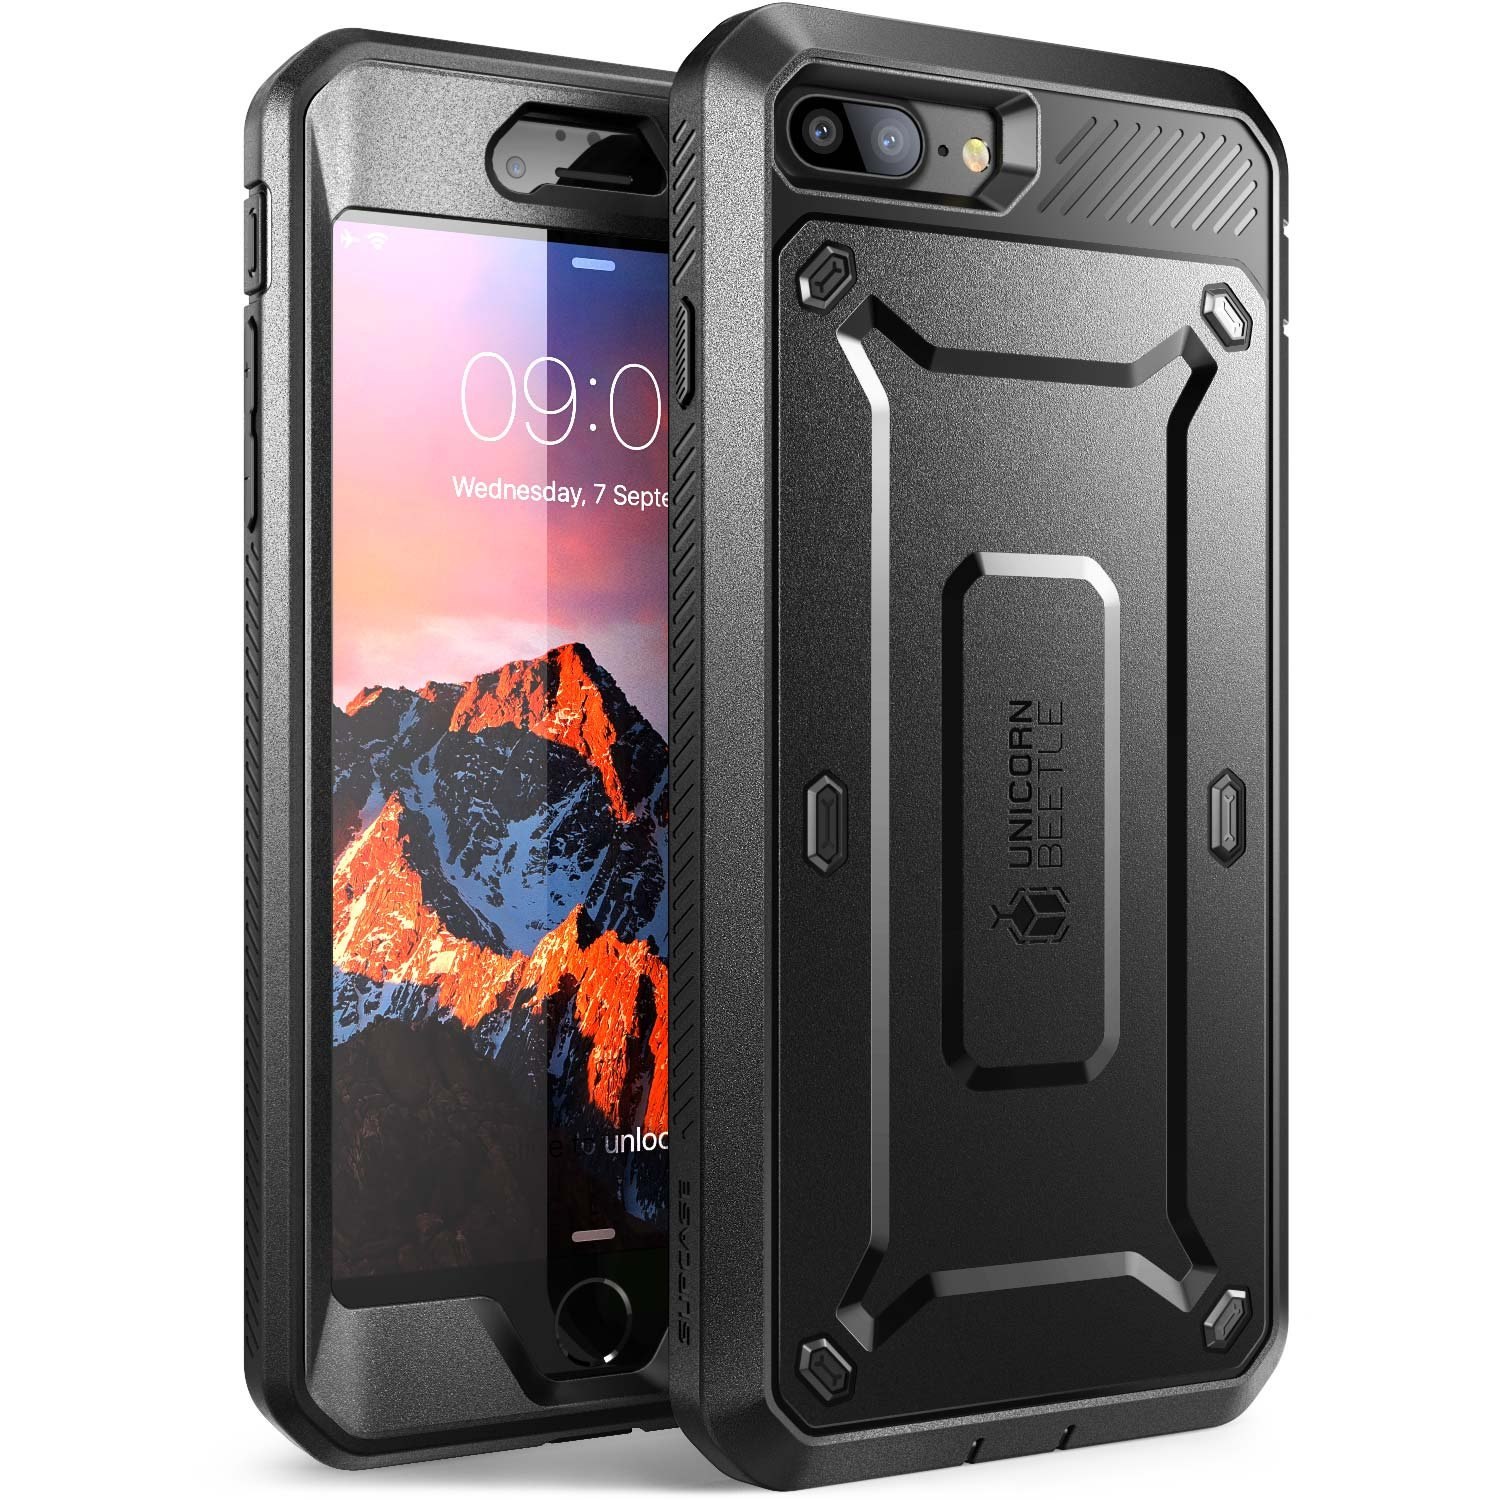 SUPCASE Unicorn Beetle Pro Series Case Designed for iPhone 7 Plus, iPhone 8 Plus Case, with Built-in Screen Protector Full-Body Rugged Holster Case for iPhone 7 Plus/iPhone 8 Plus (Black) by SupCase